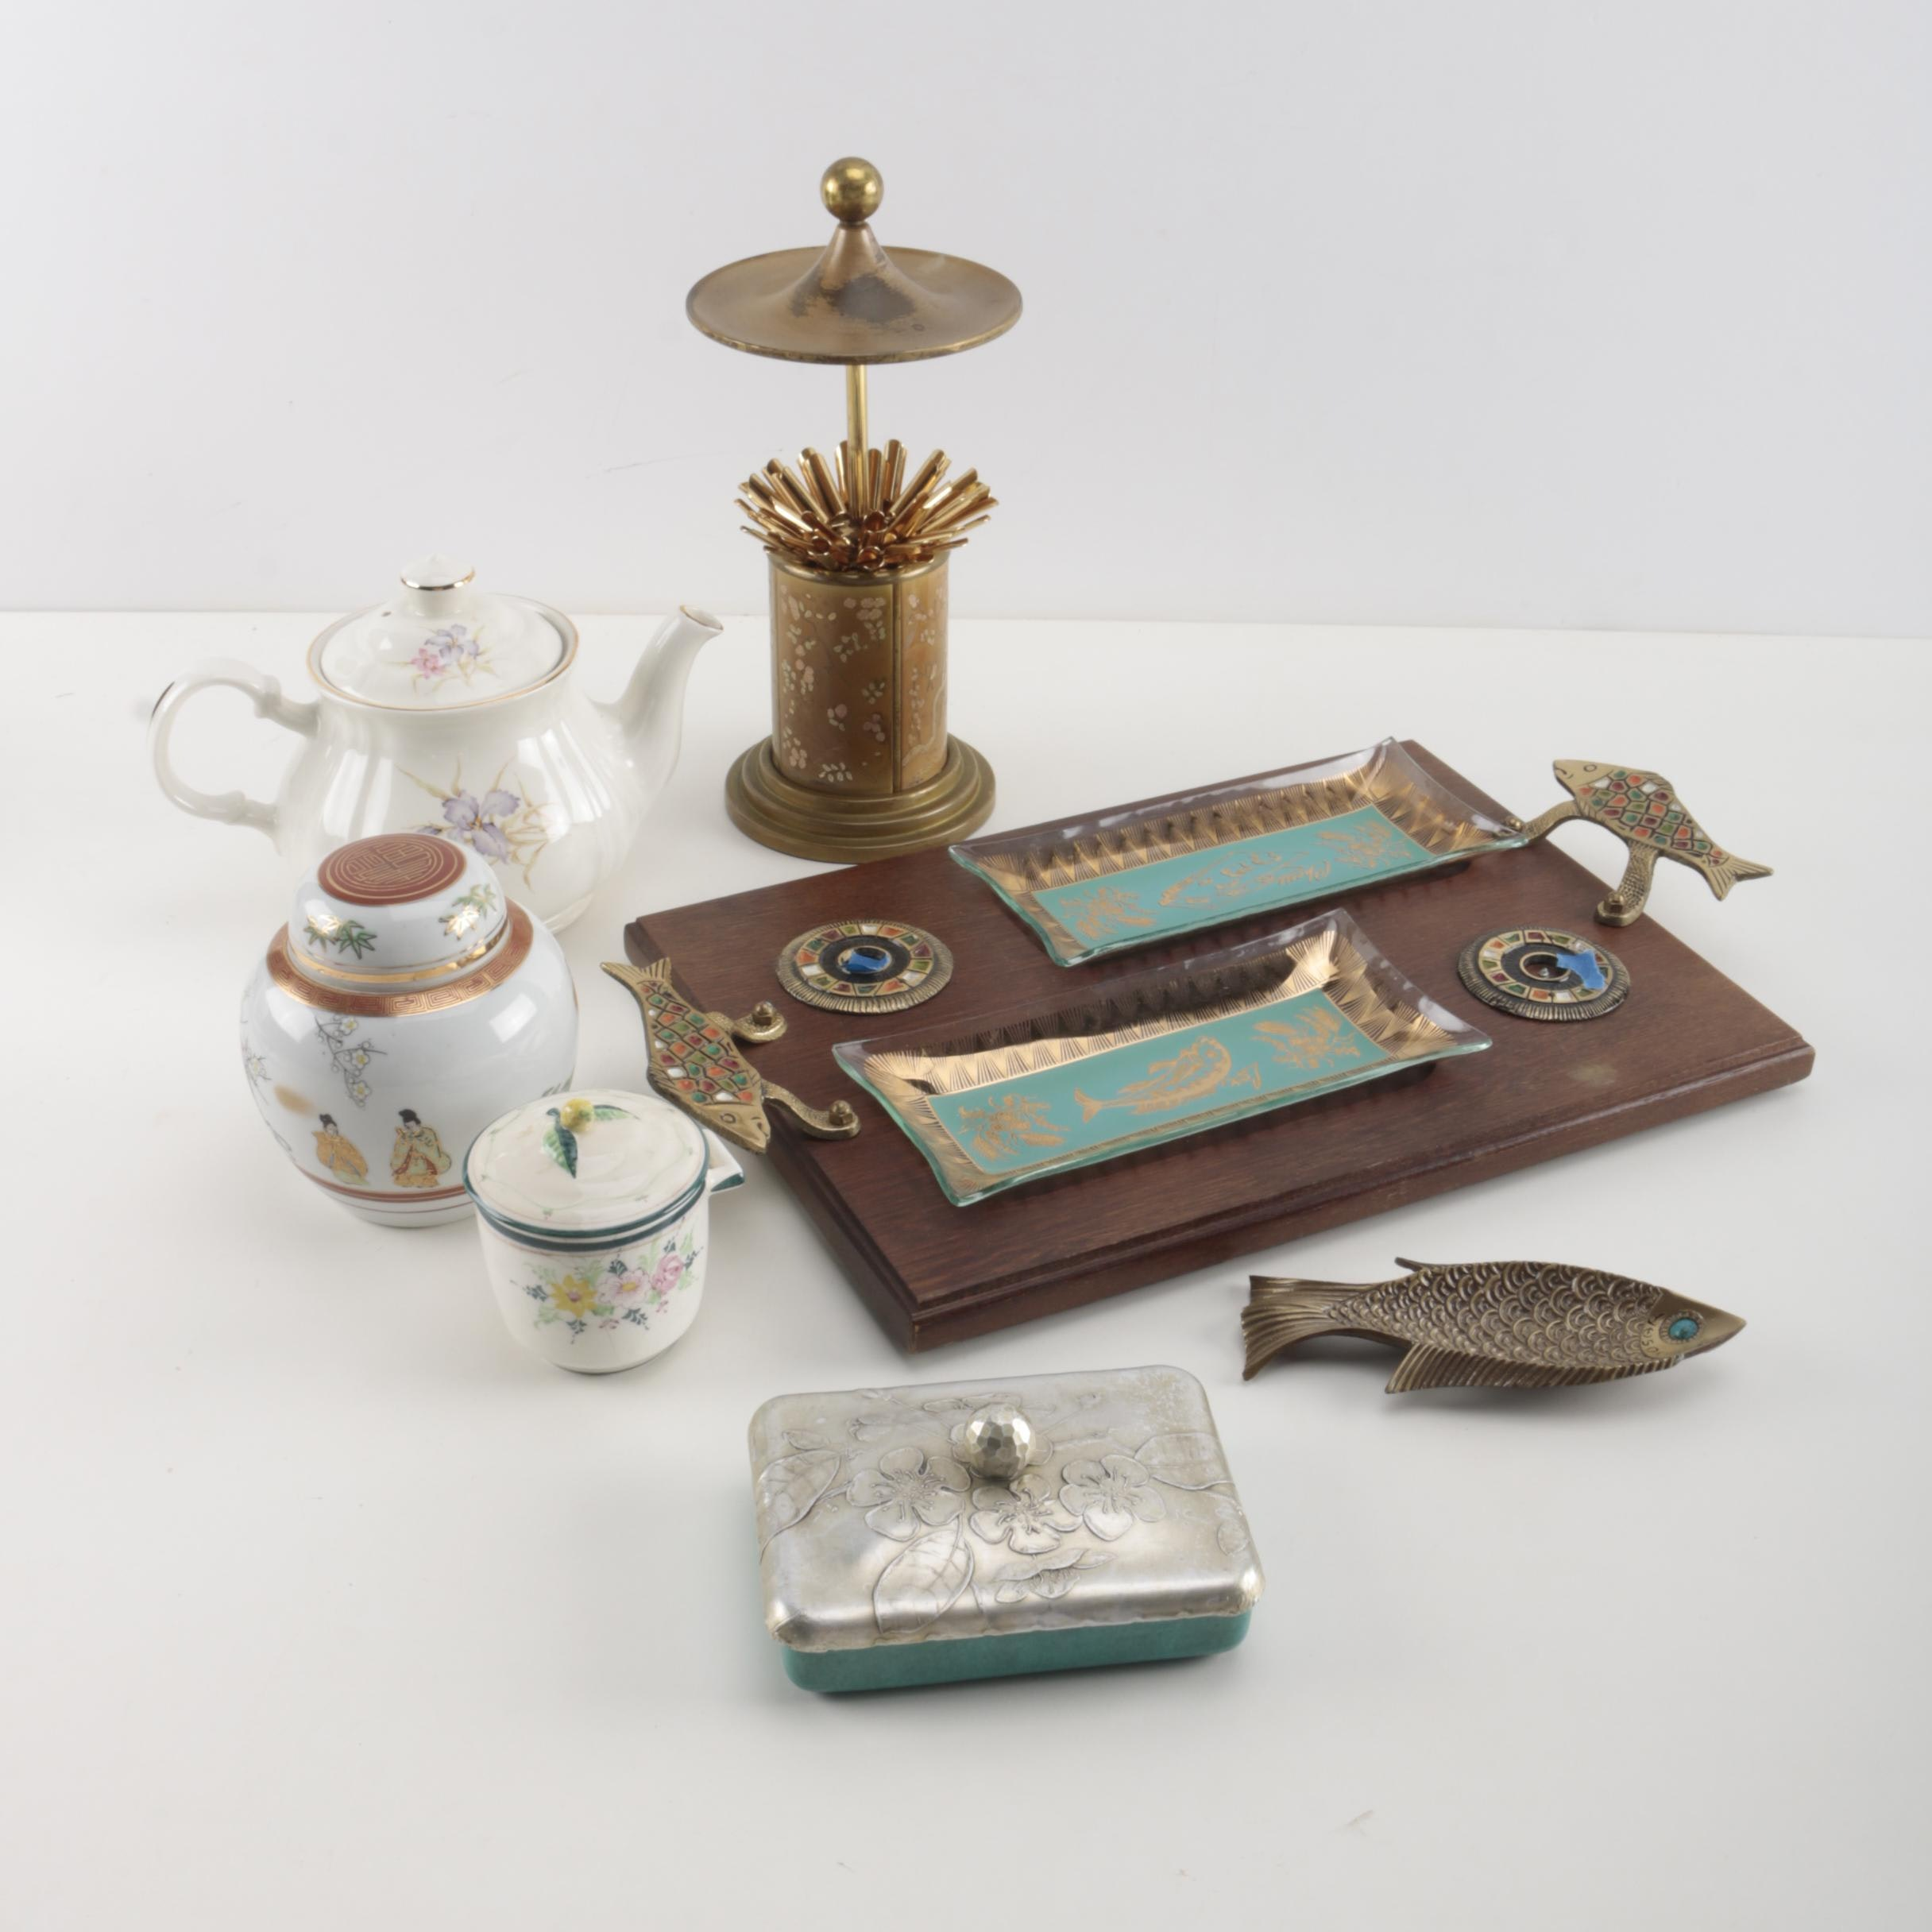 Selection of Vintage Home Decor